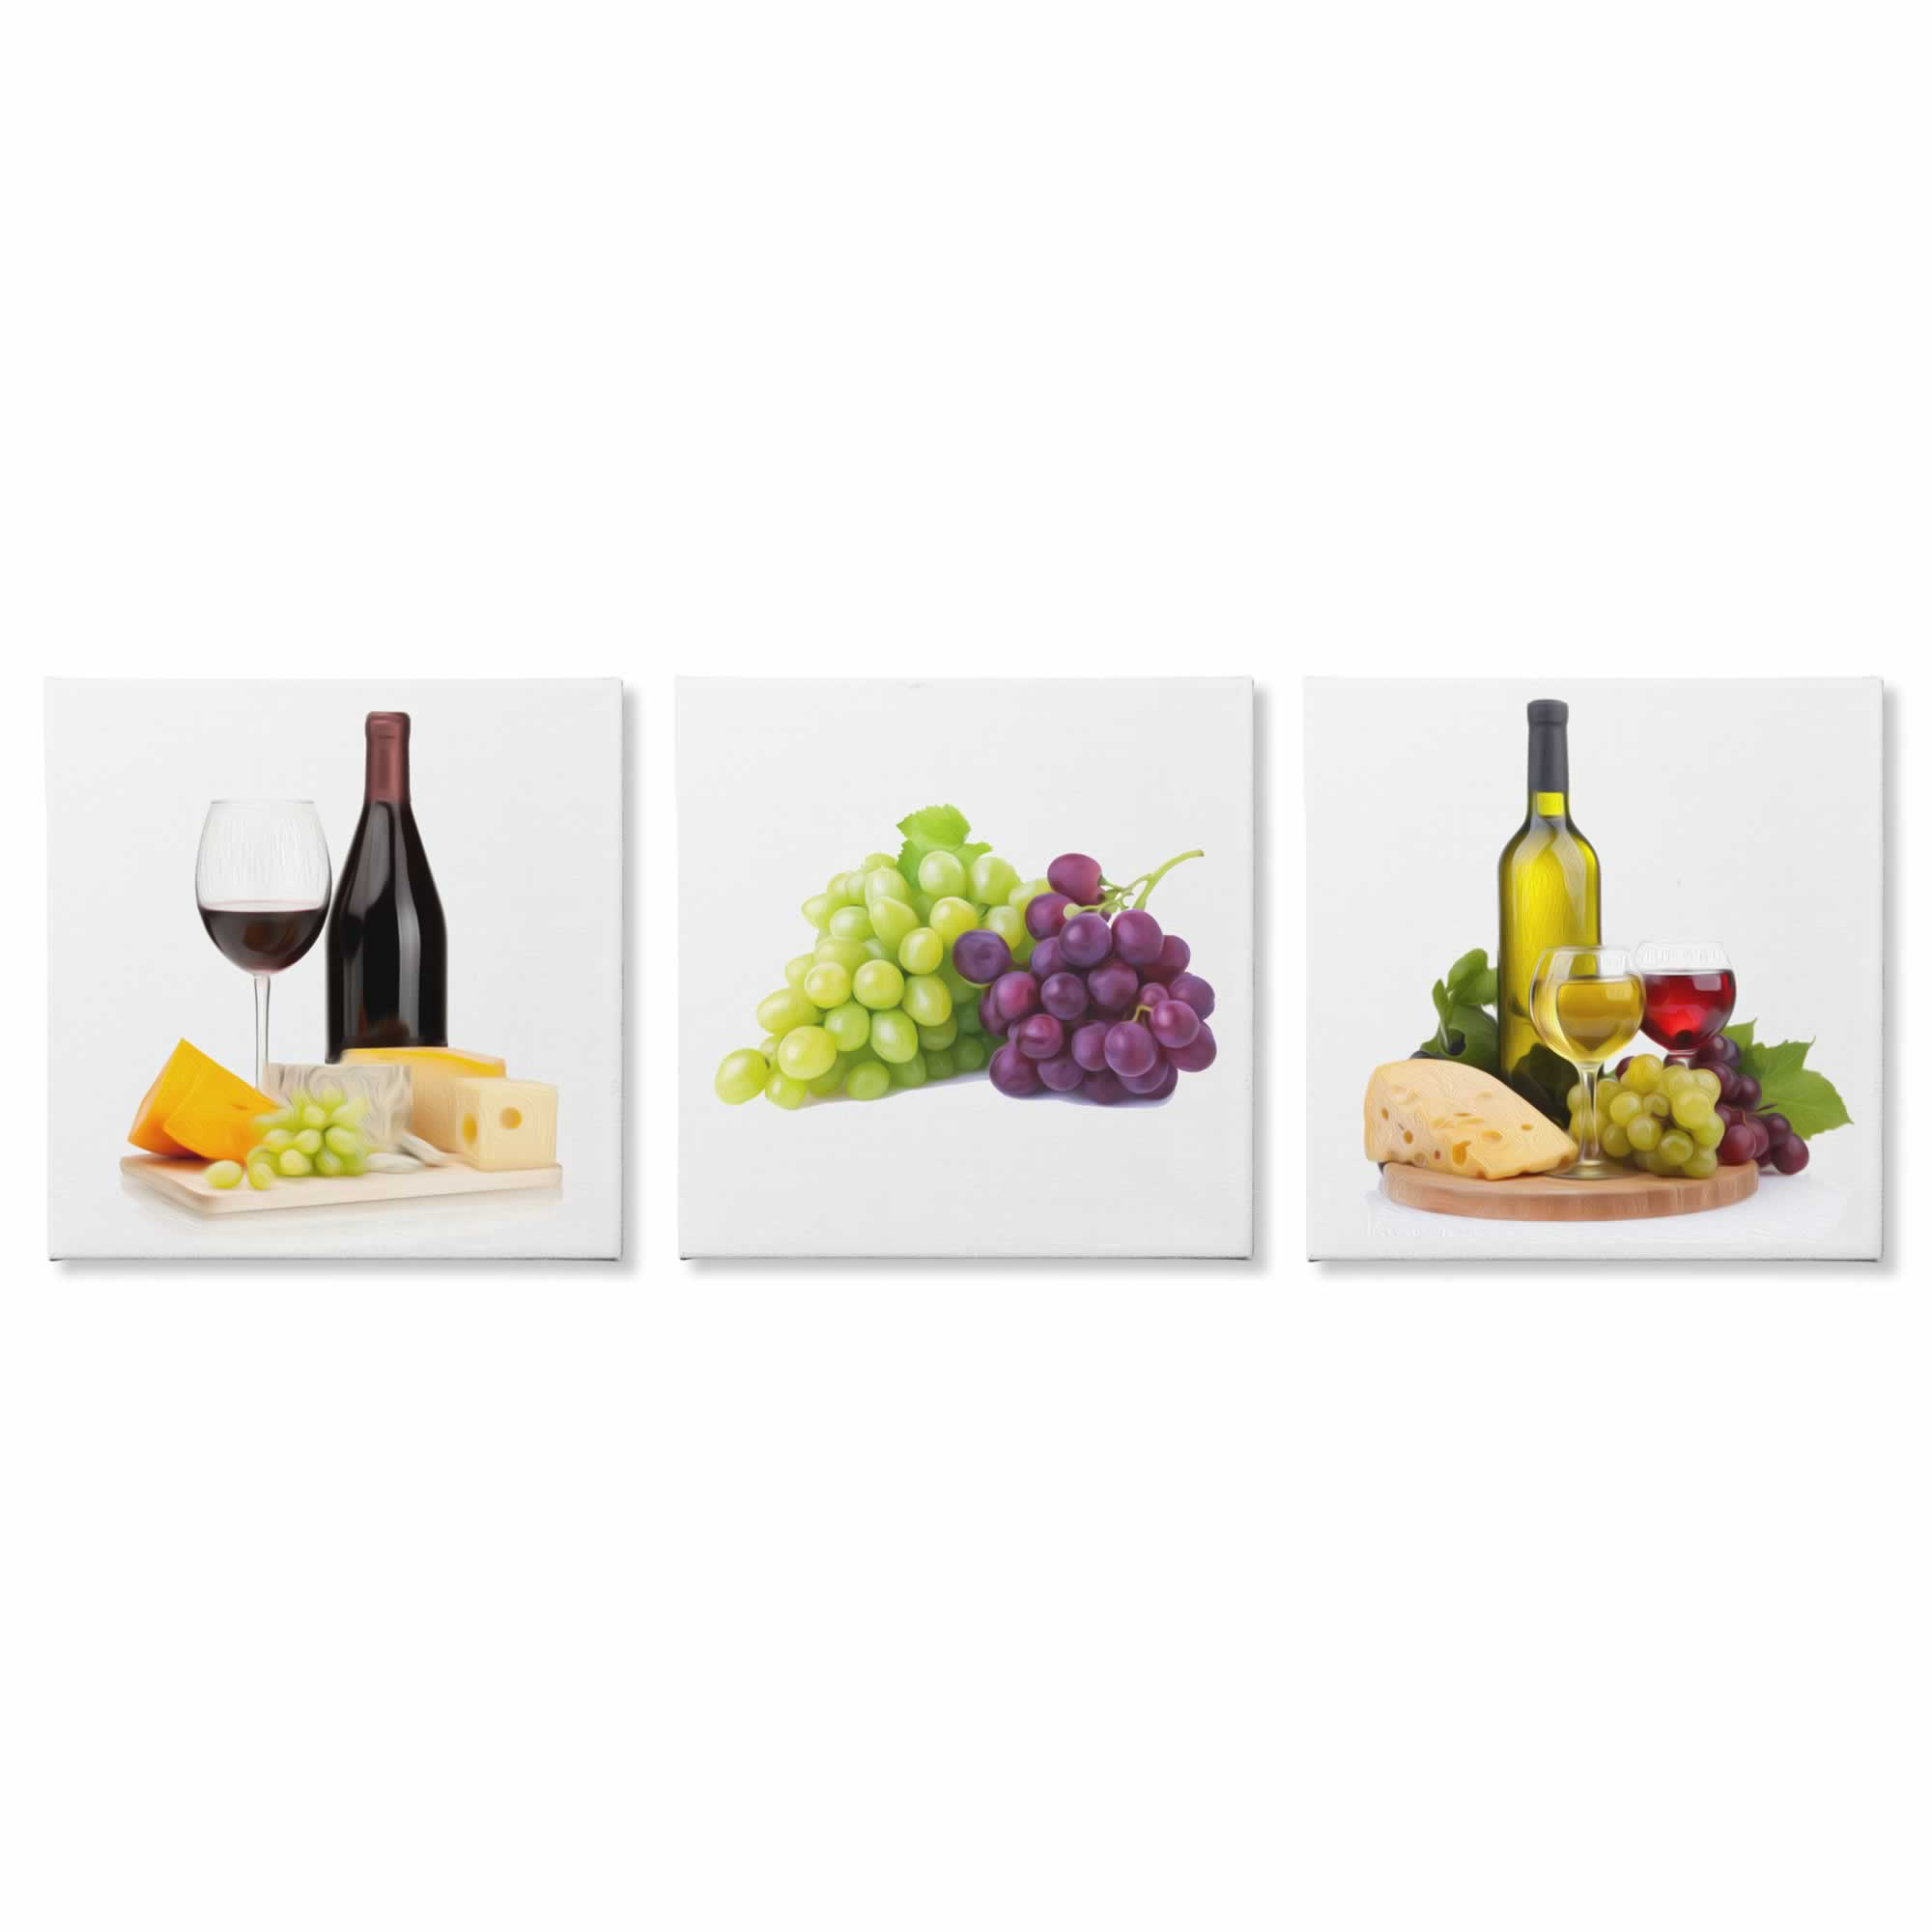 Wine and Cheese - Contemporary giclee Painting Print on Canvas